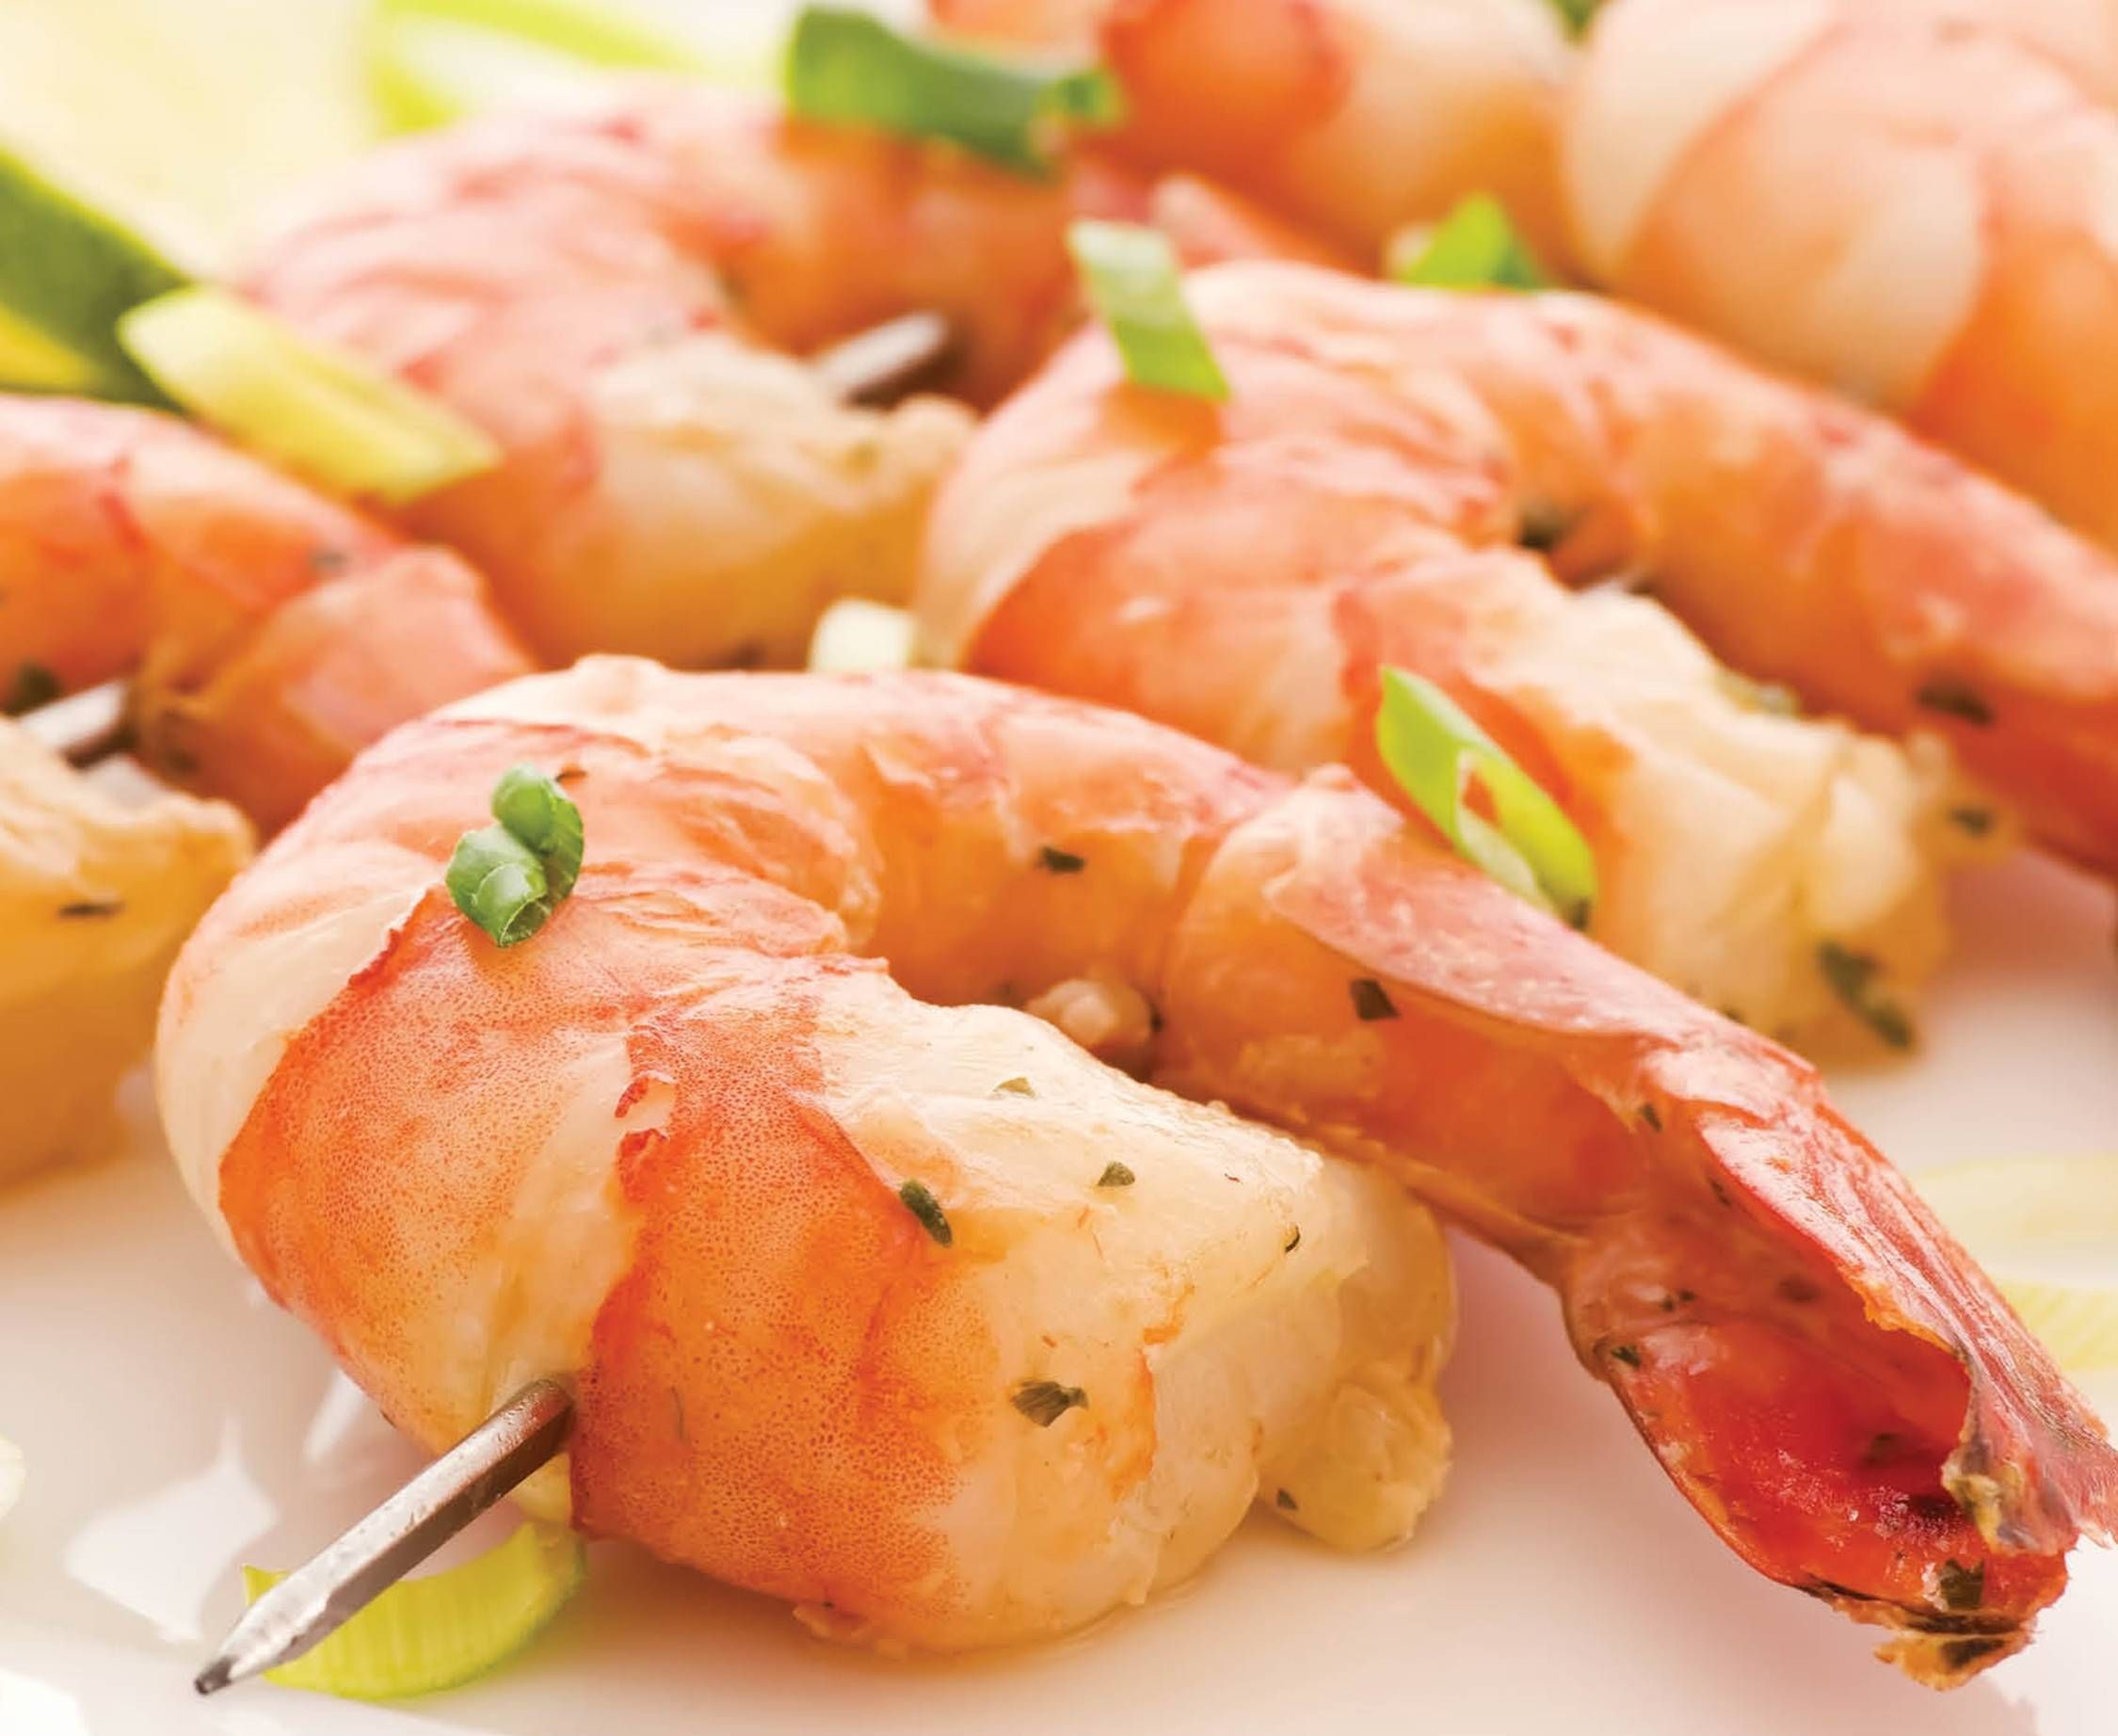 The Best Seafood Restaurant In Town Savour Cuisines Our Fish Market Chefs Will Cook Them To Your Order While You Take